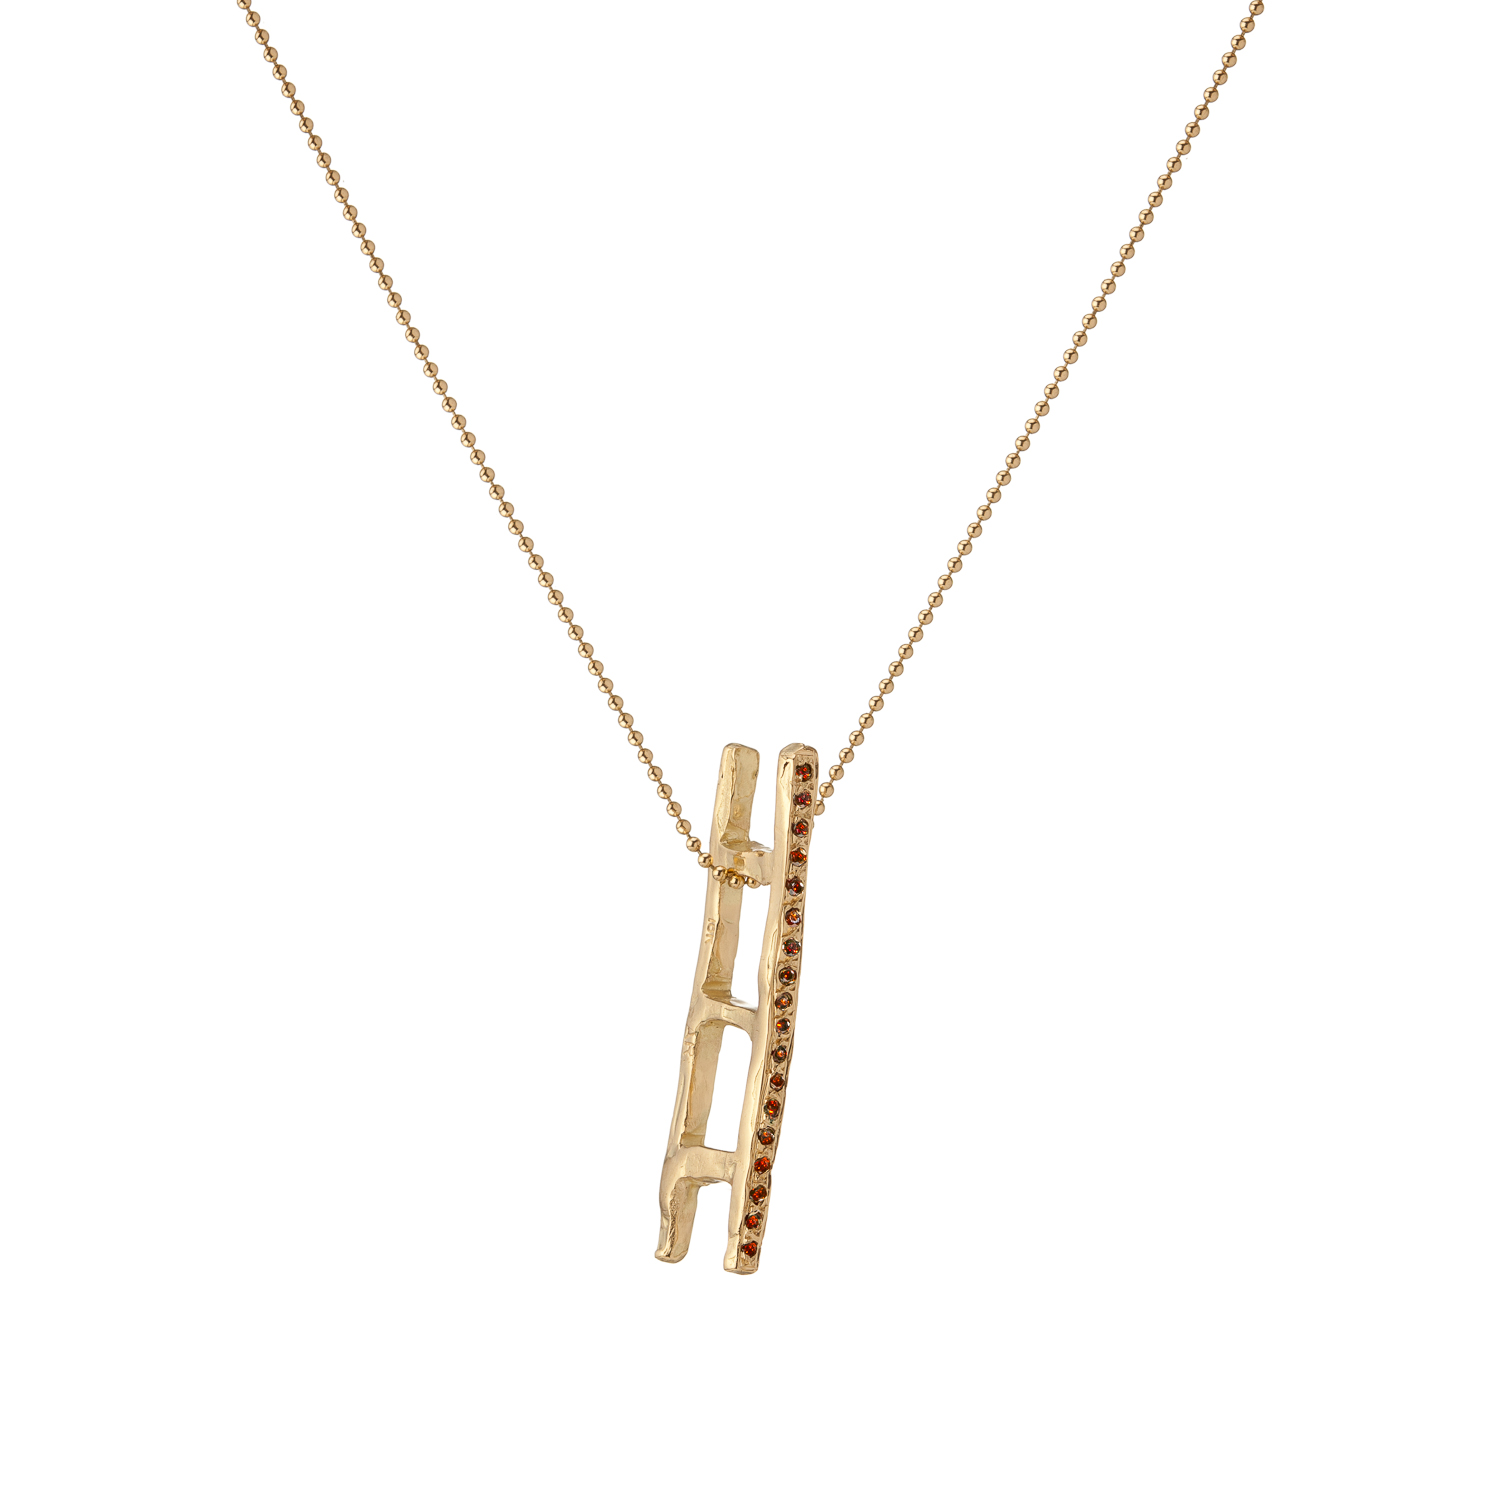 Ladder | 18k gold and cognac diamonds